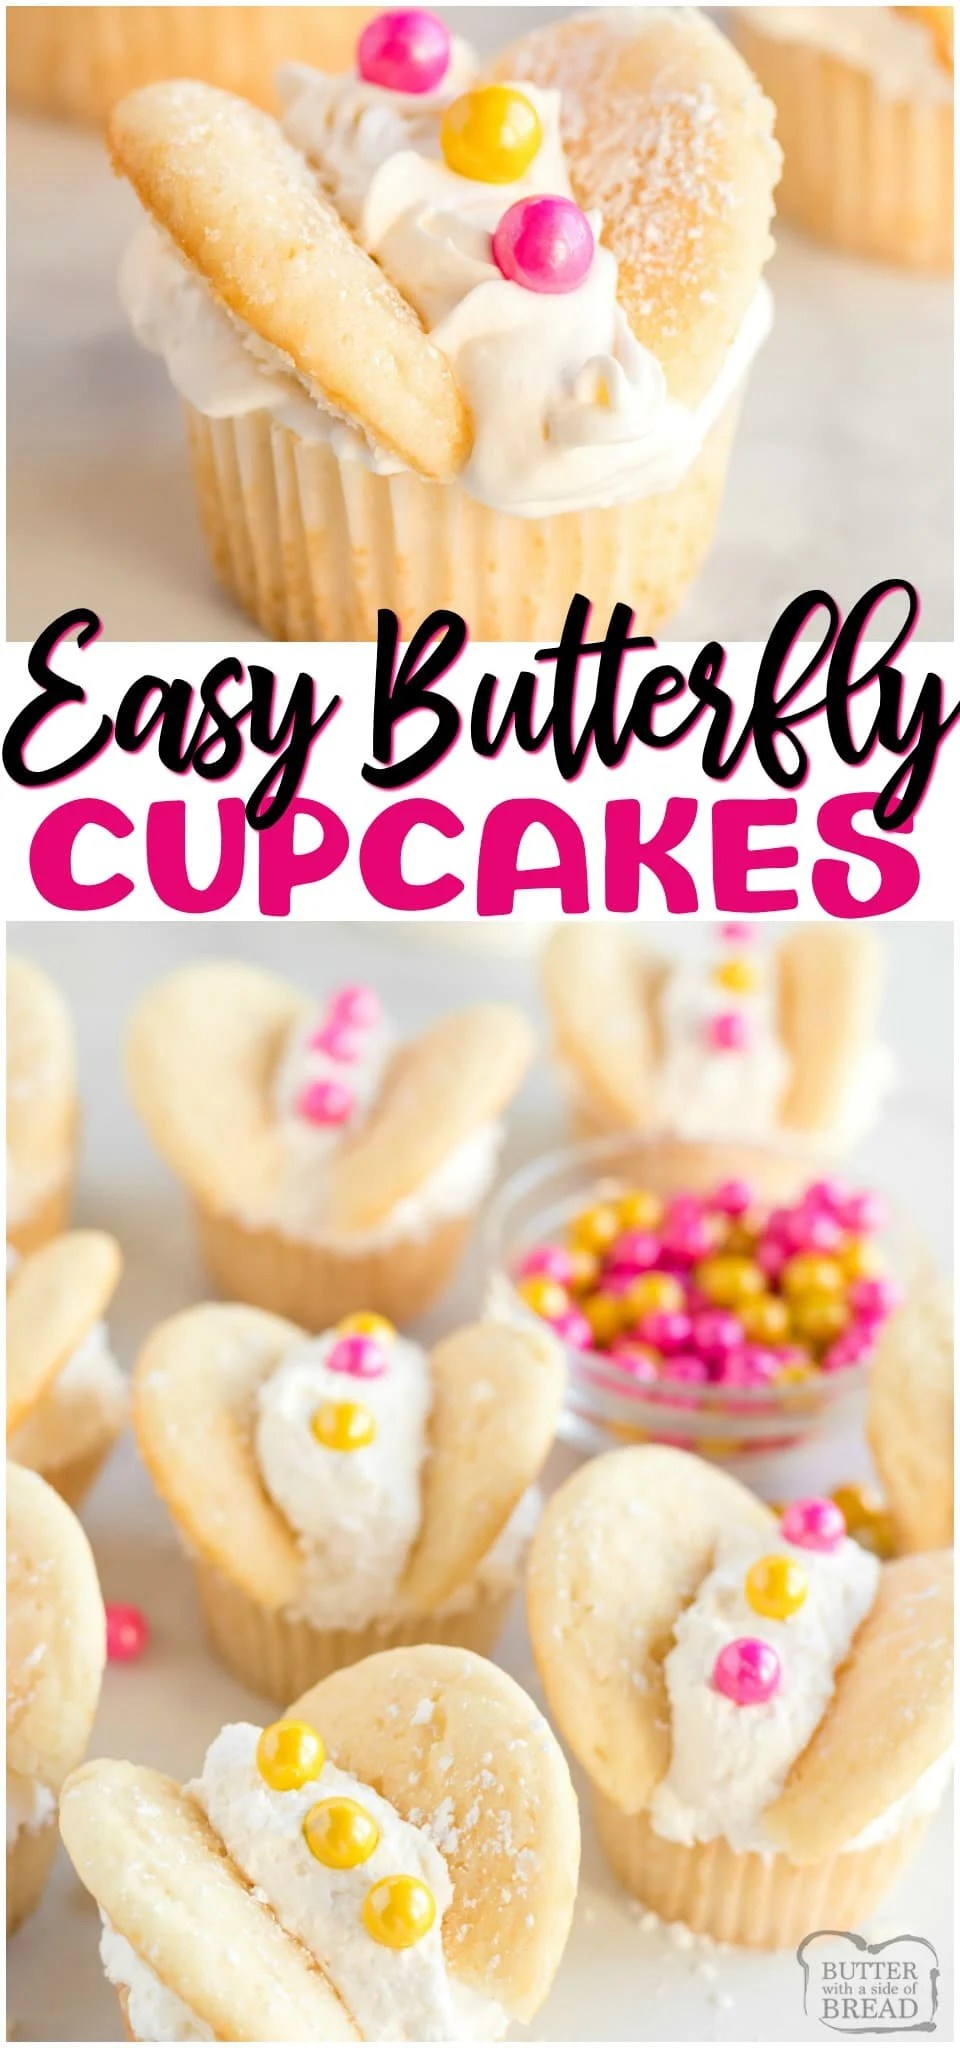 Vanilla Butterfly Cupcakes topped with whipped cream and colorful candies. Easily make these perfect spring butterfly cupcakes for any occasion! #cupcakes #dessert #baking #vanilla #butterfly #Spring #Pretty #recipe from BUTTER WITH A SIDE OF BREAD